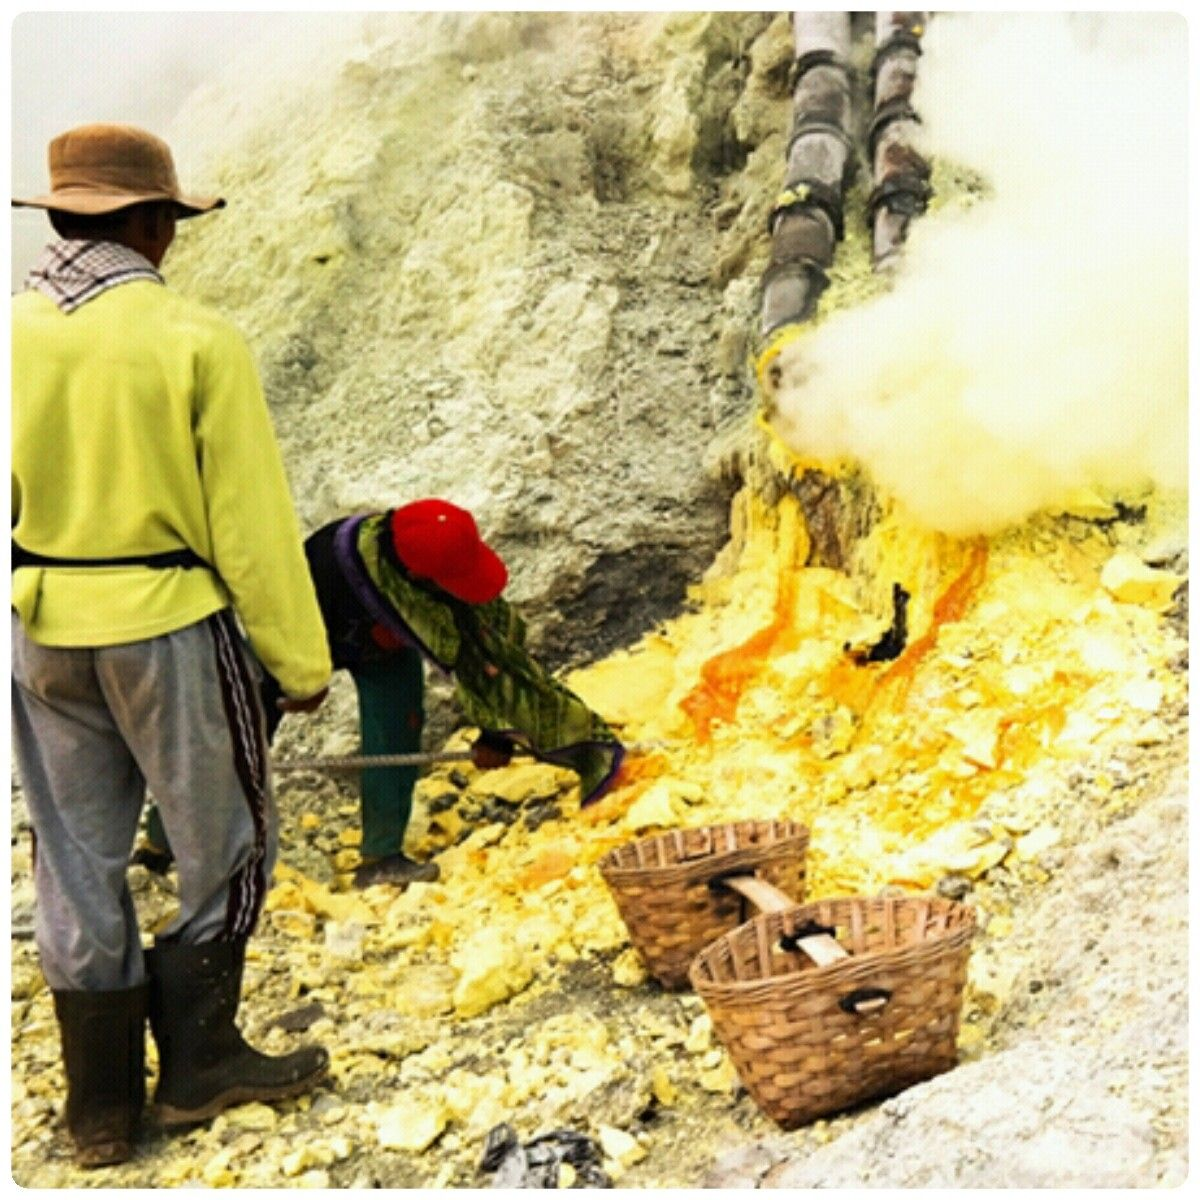 Sulfur miner at Ijen crater, Indonesia